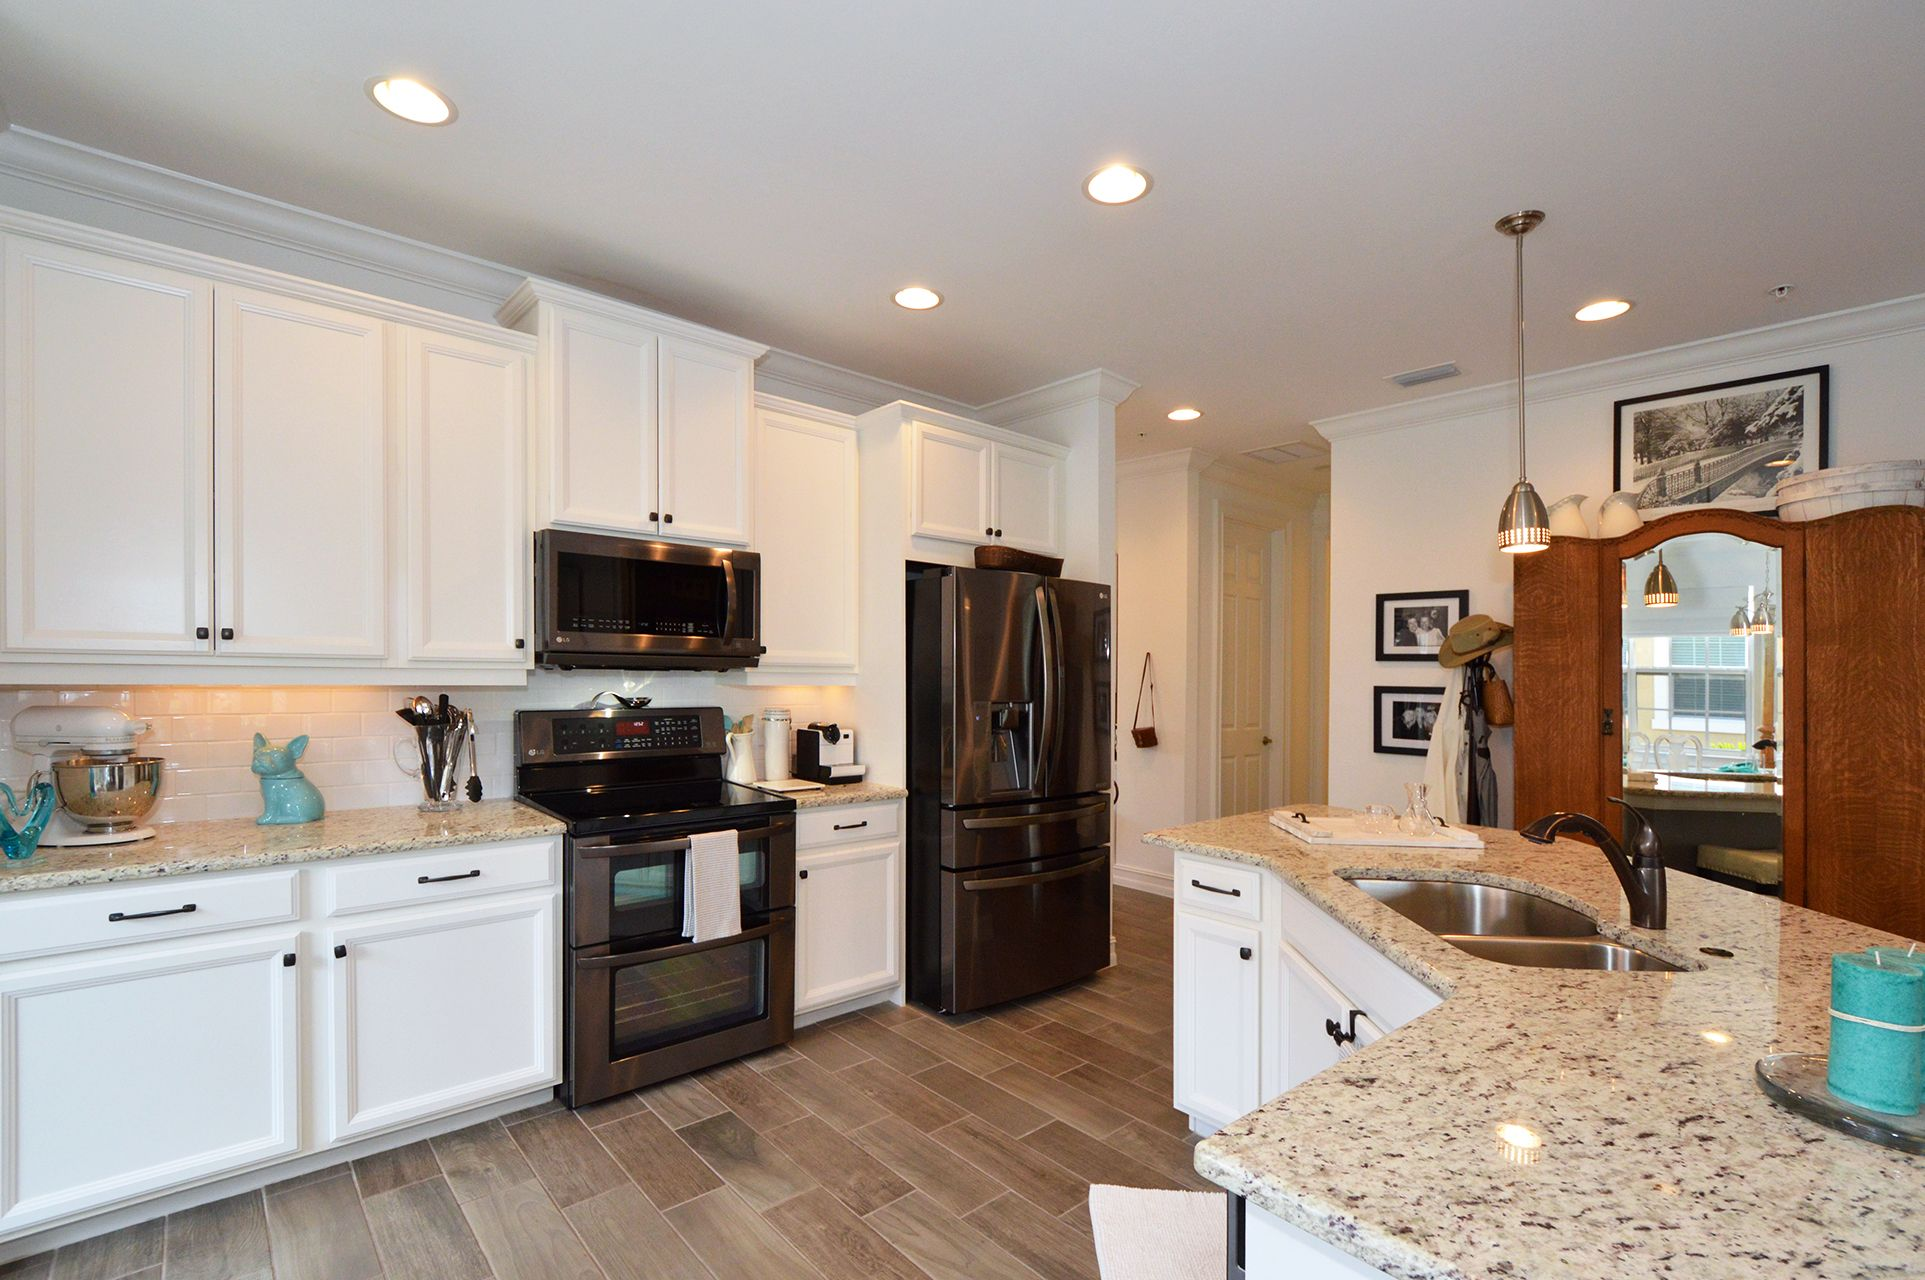 Beautifully Done Kitchen With Staggered Cabinets And Black Stainless Appliances Cozy Kitchen Cabinetry Design Staggered Kitchen Cabinets Bathroom Design Decor